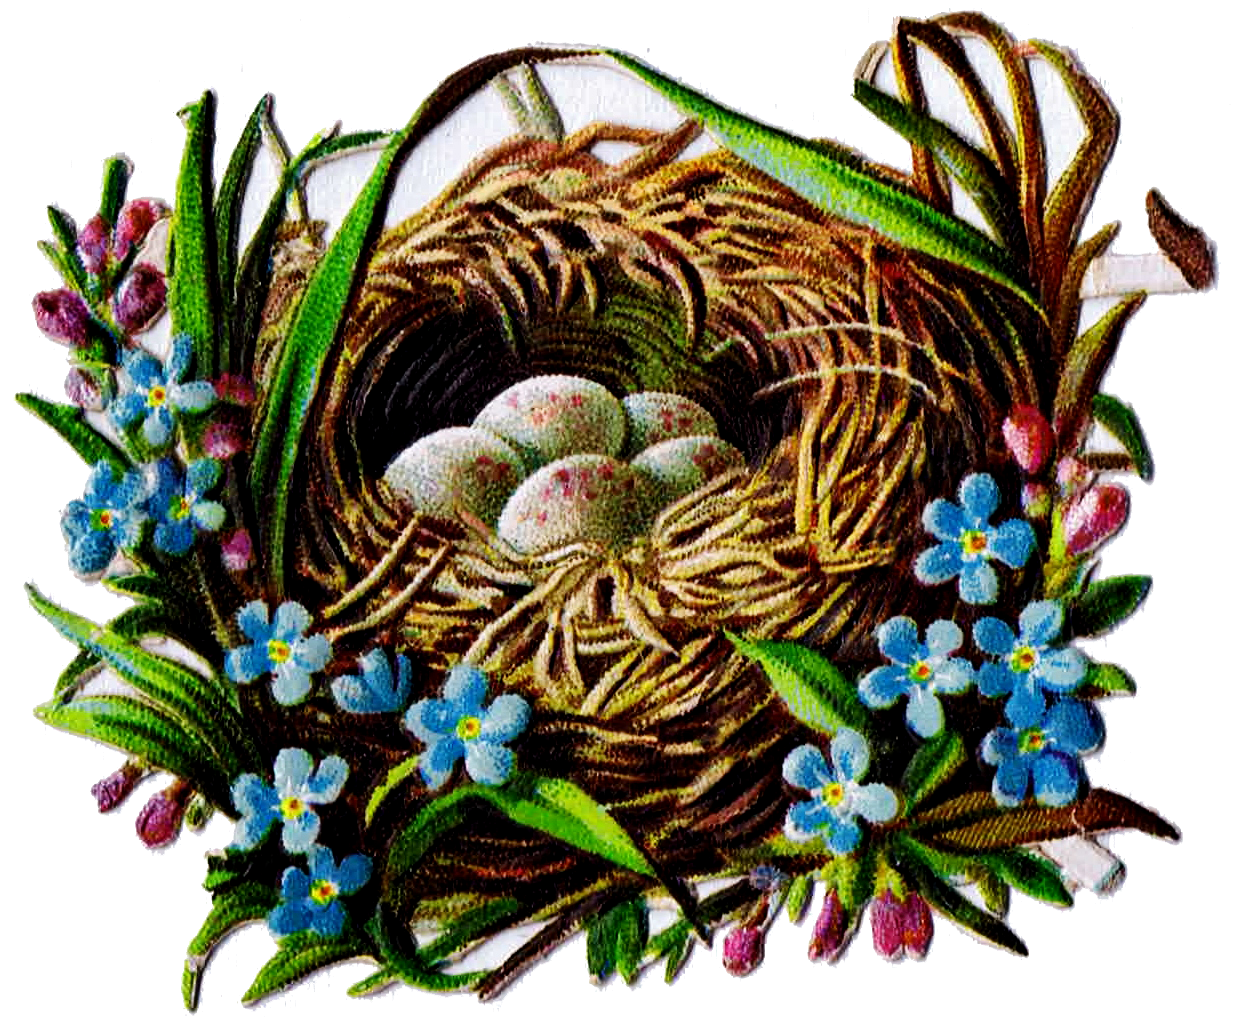 Free Printable Bird Nest Clip Art Royalty Free Antique Graphics from knickoftimeinteriors.blogspot.com